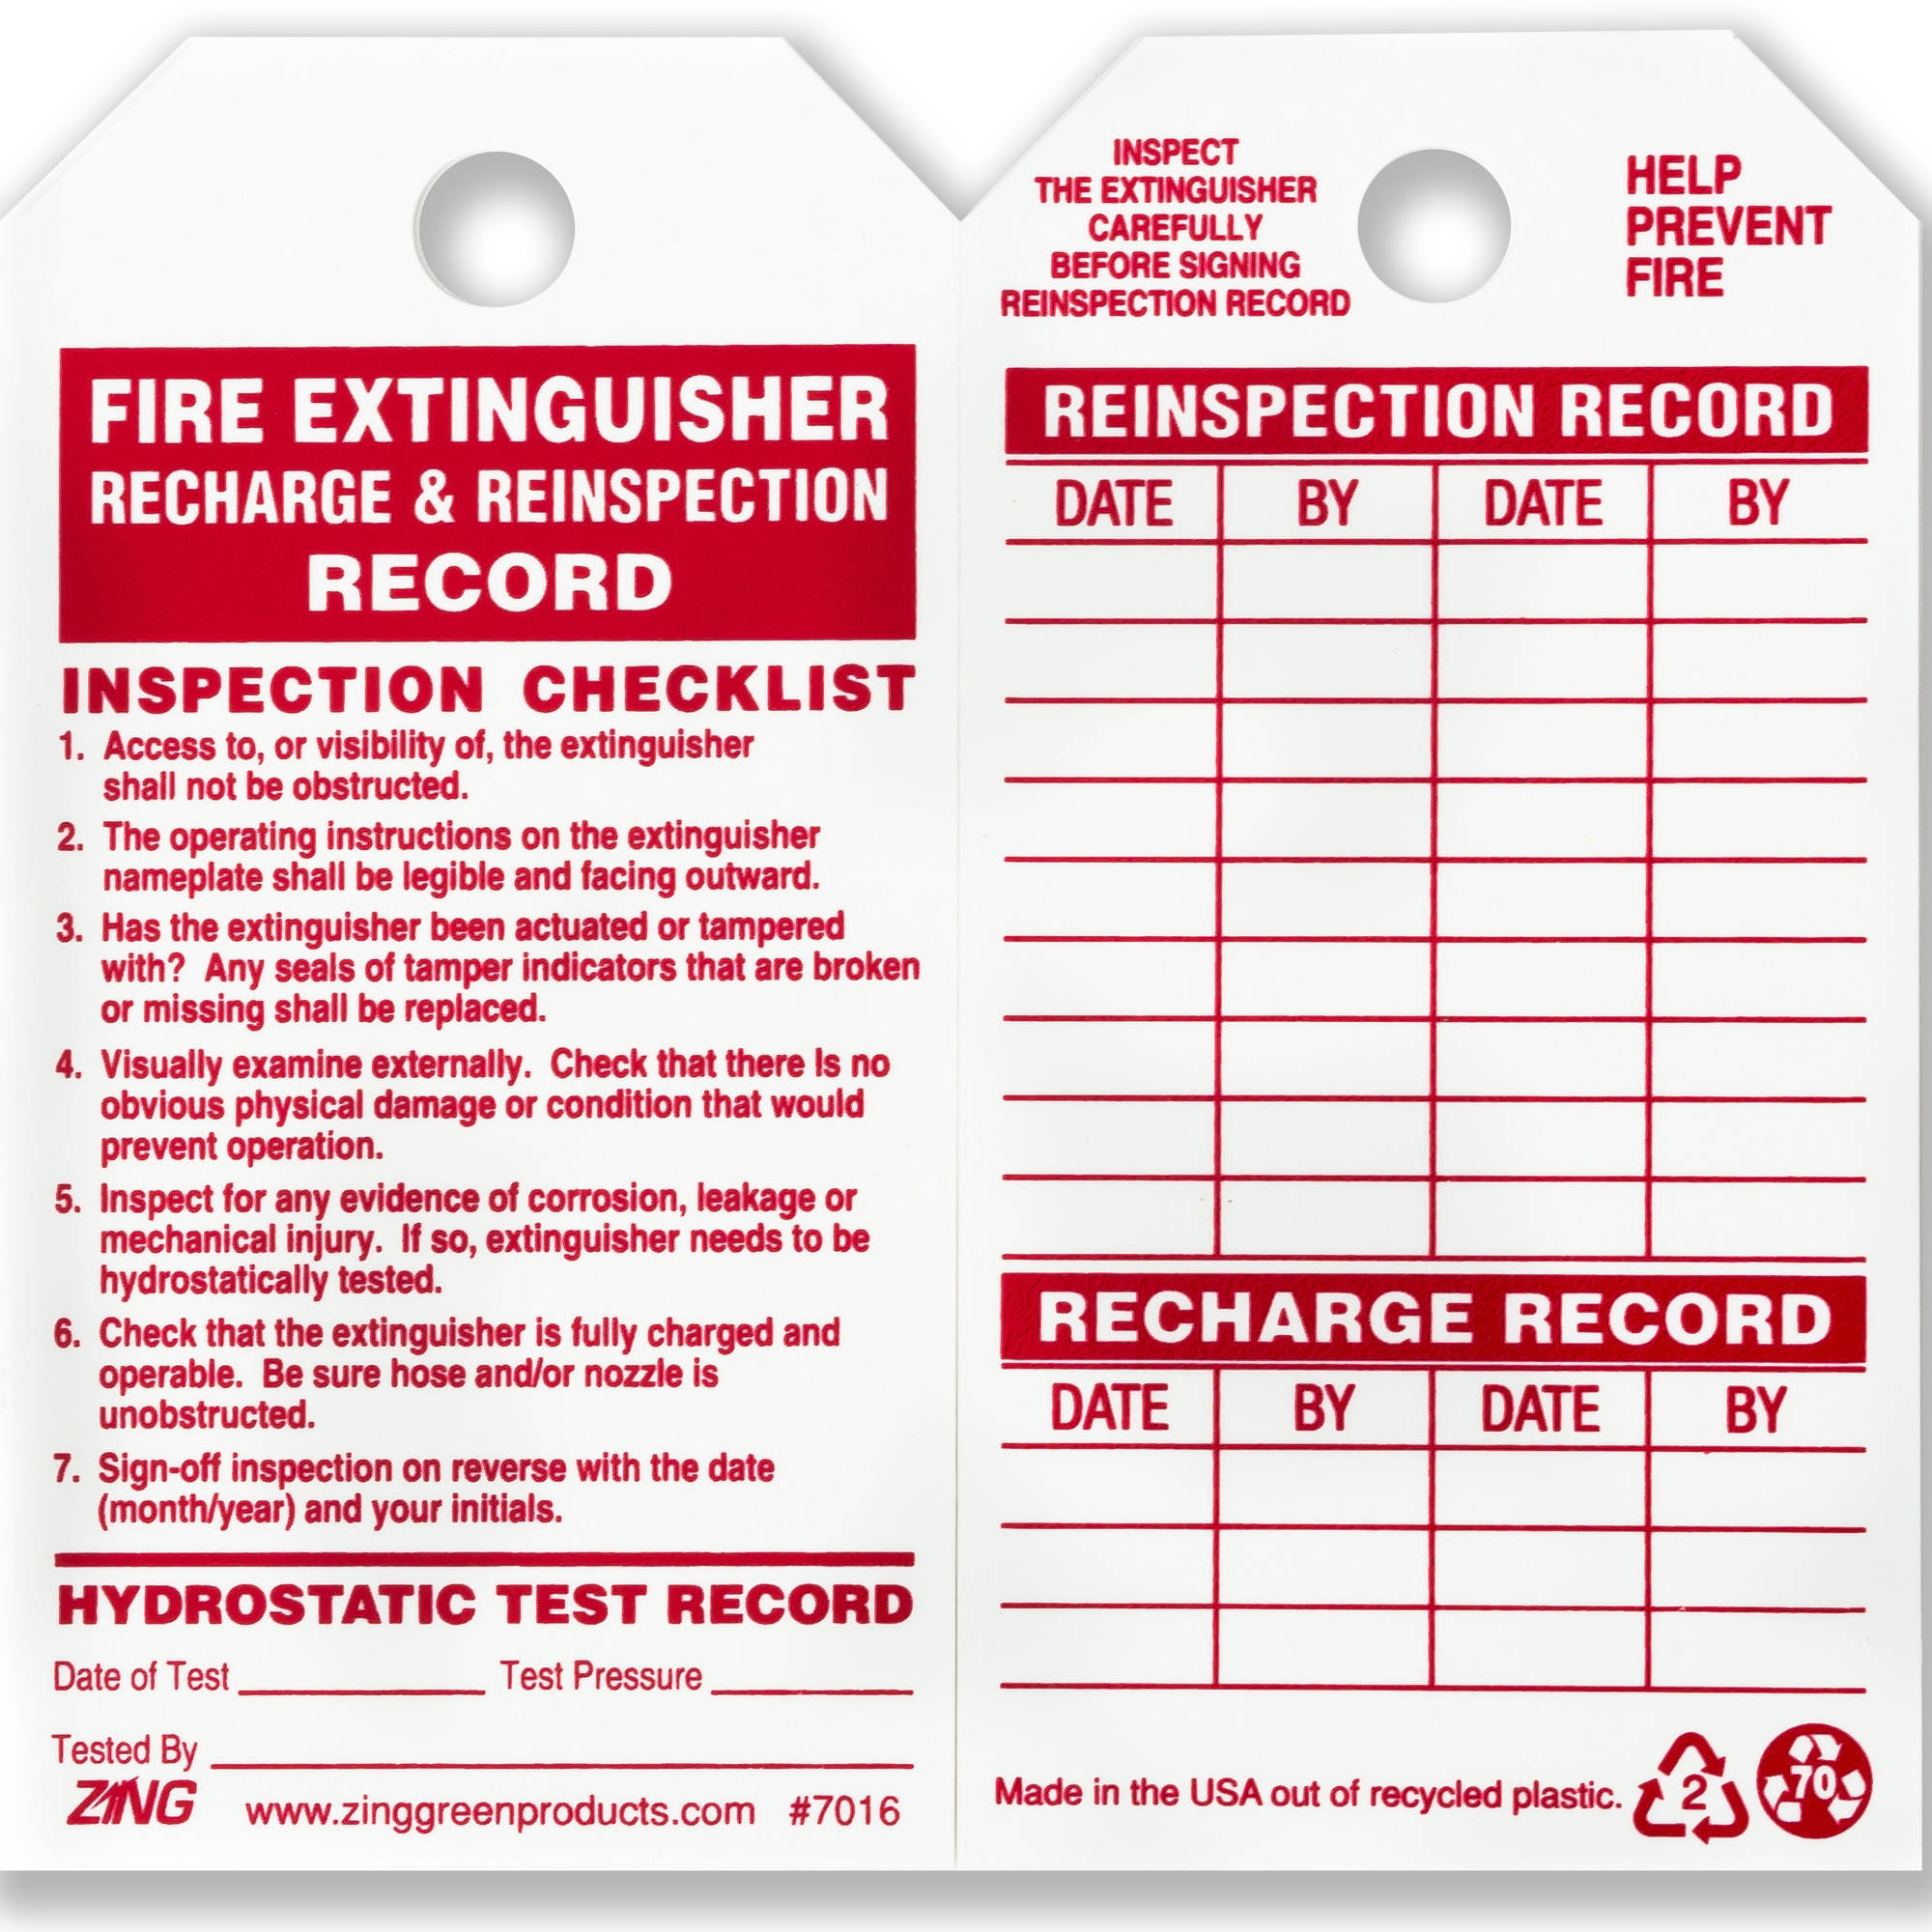 ZING Eco Safety Tag, Fire Extinguisher, 5.75Hx3W, 10-Pack